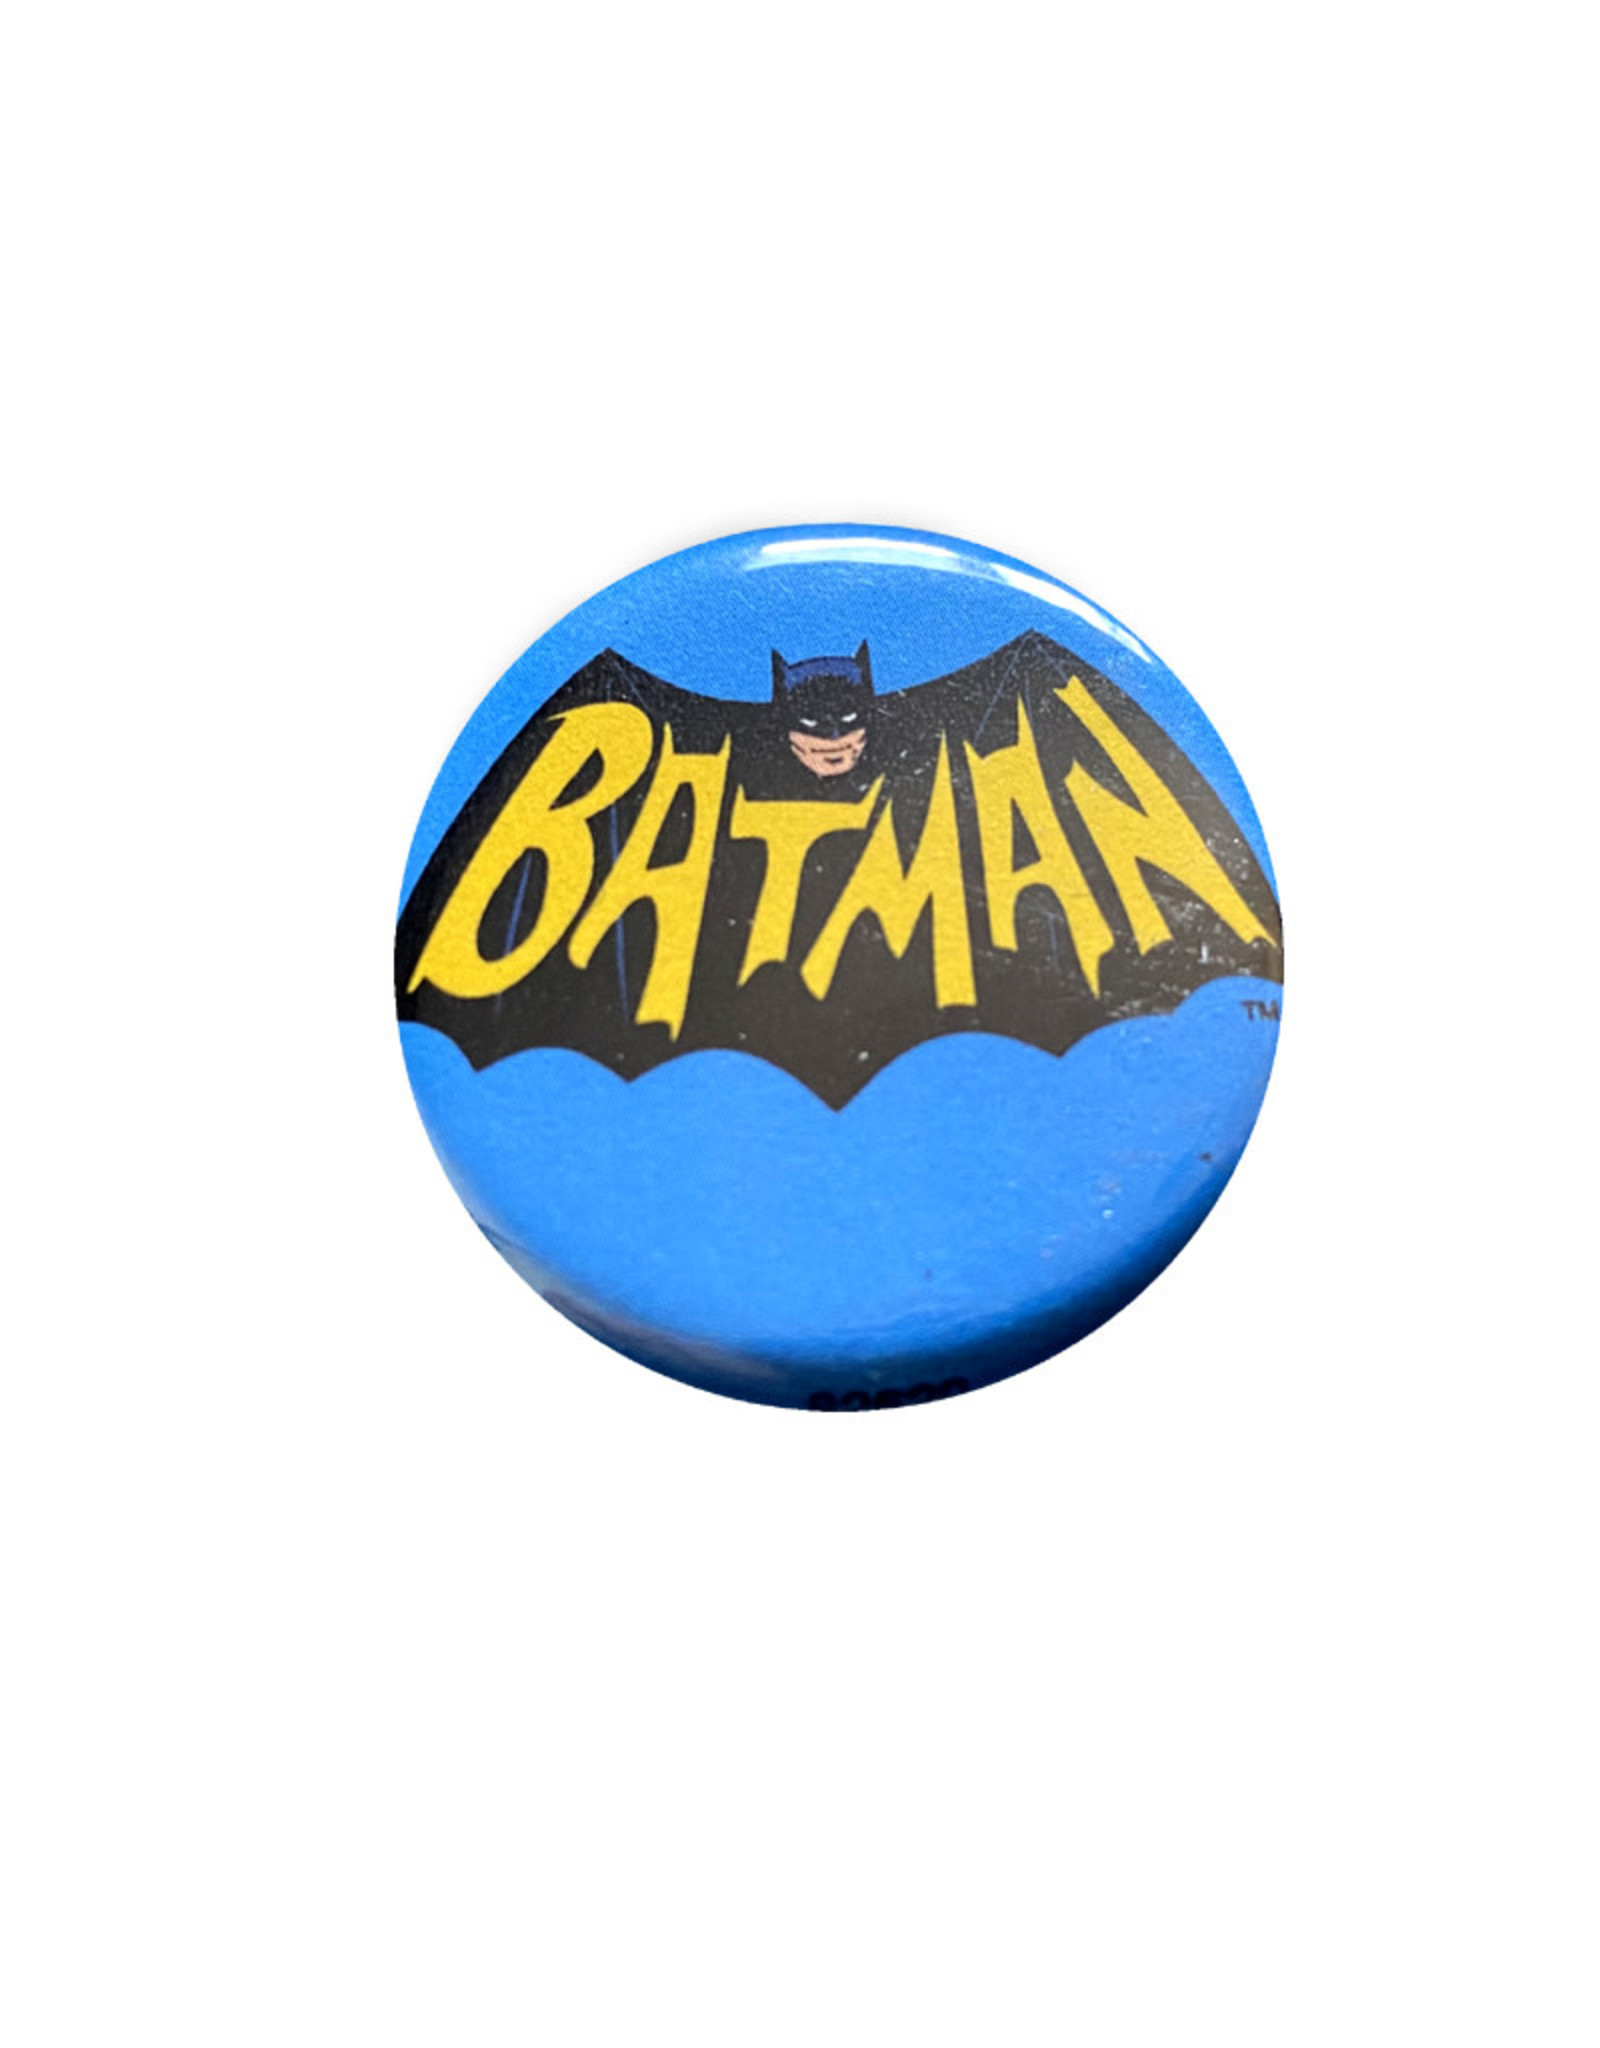 Dc comics DC Comics ( Button )  Batman TV Show Logo